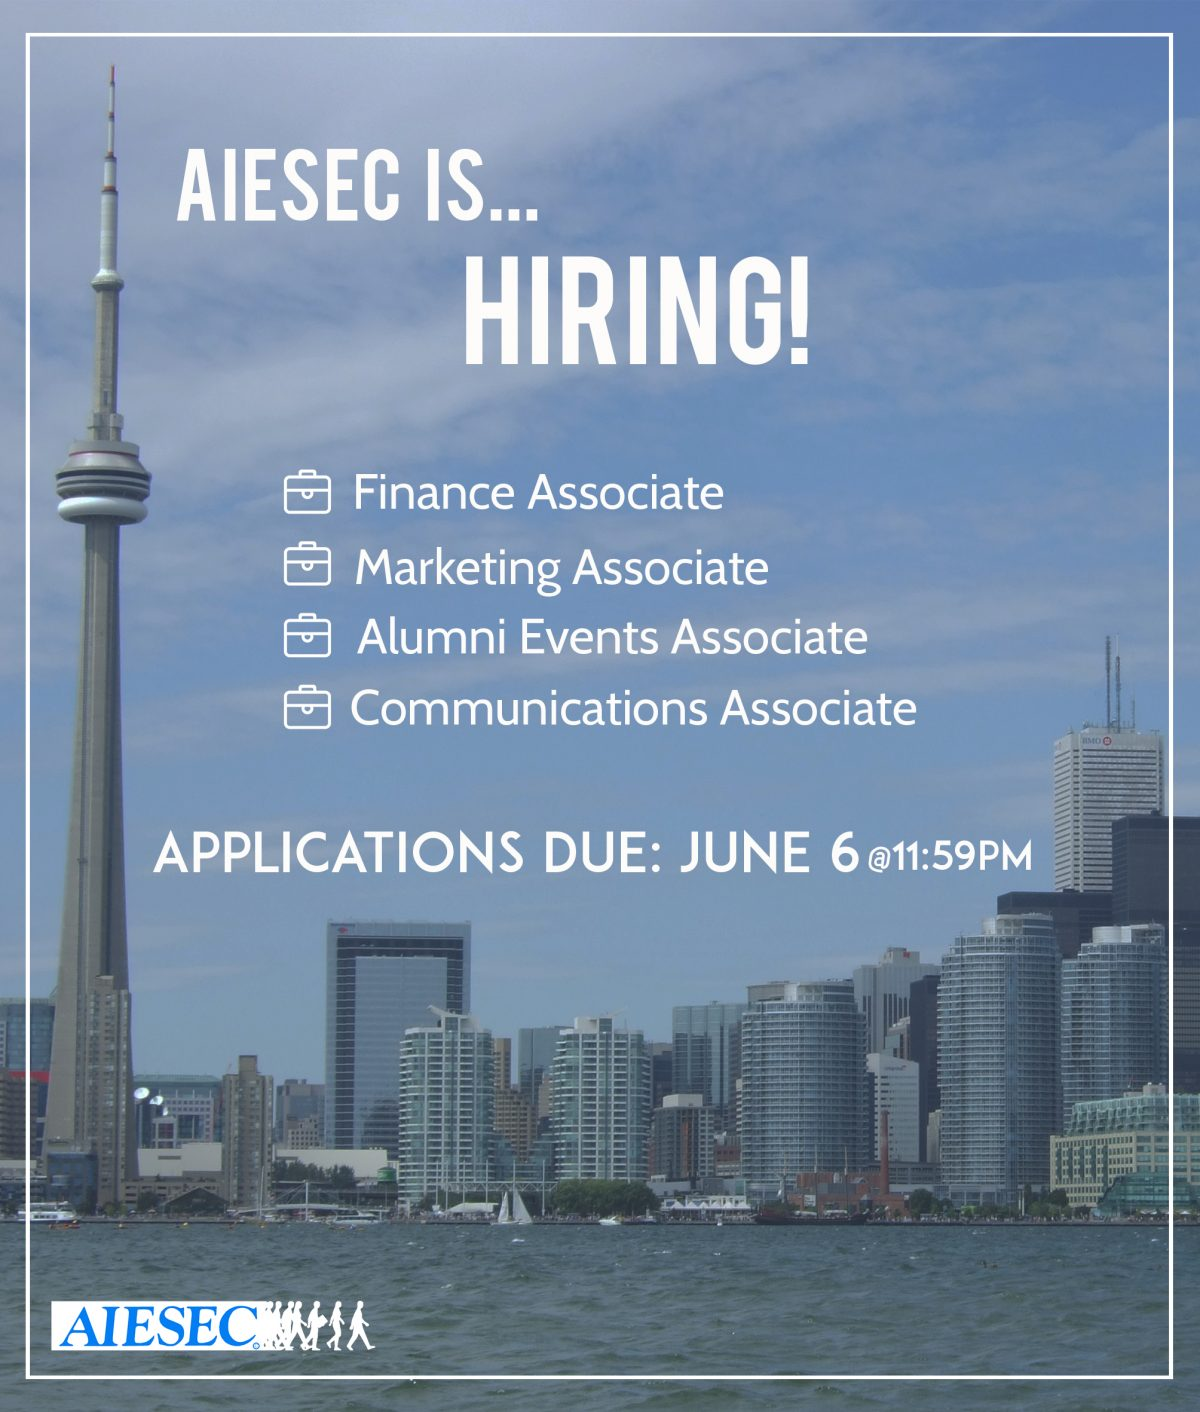 AIESEC RYERSON IS HIRING!